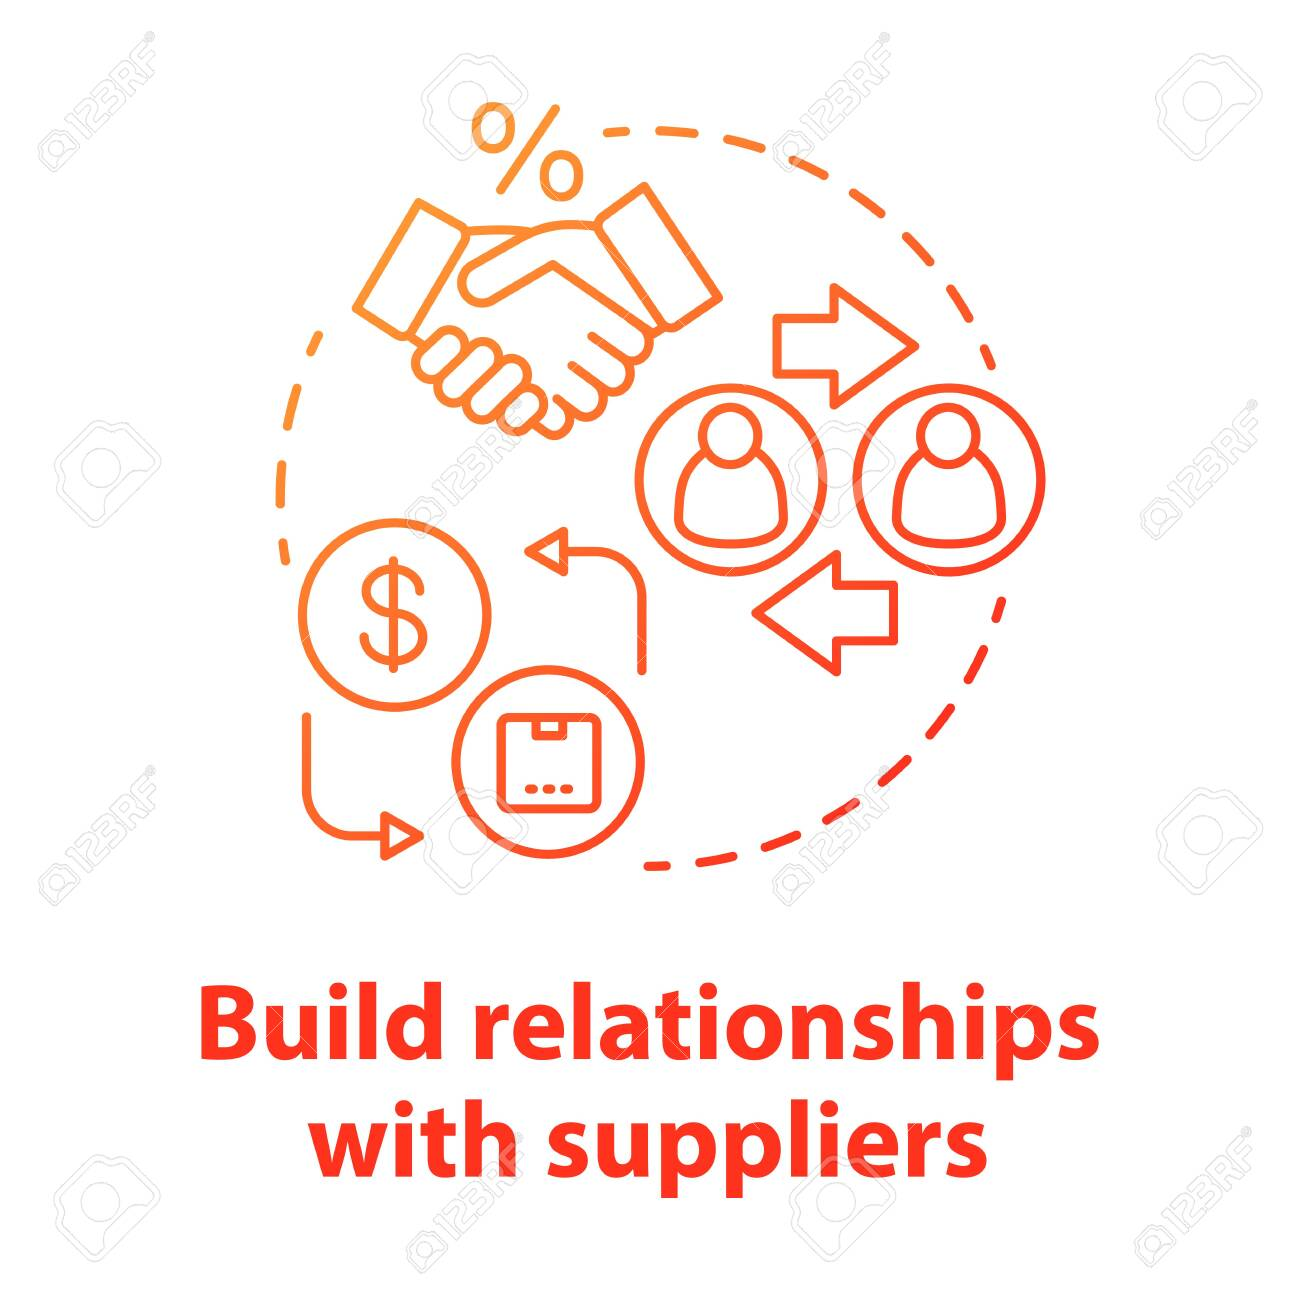 Build relationships with suppliers red concept icon. Business agreement idea thin line illustration. Supply chain management. Companies collaboration. Vector isolated outline drawing - 132919334